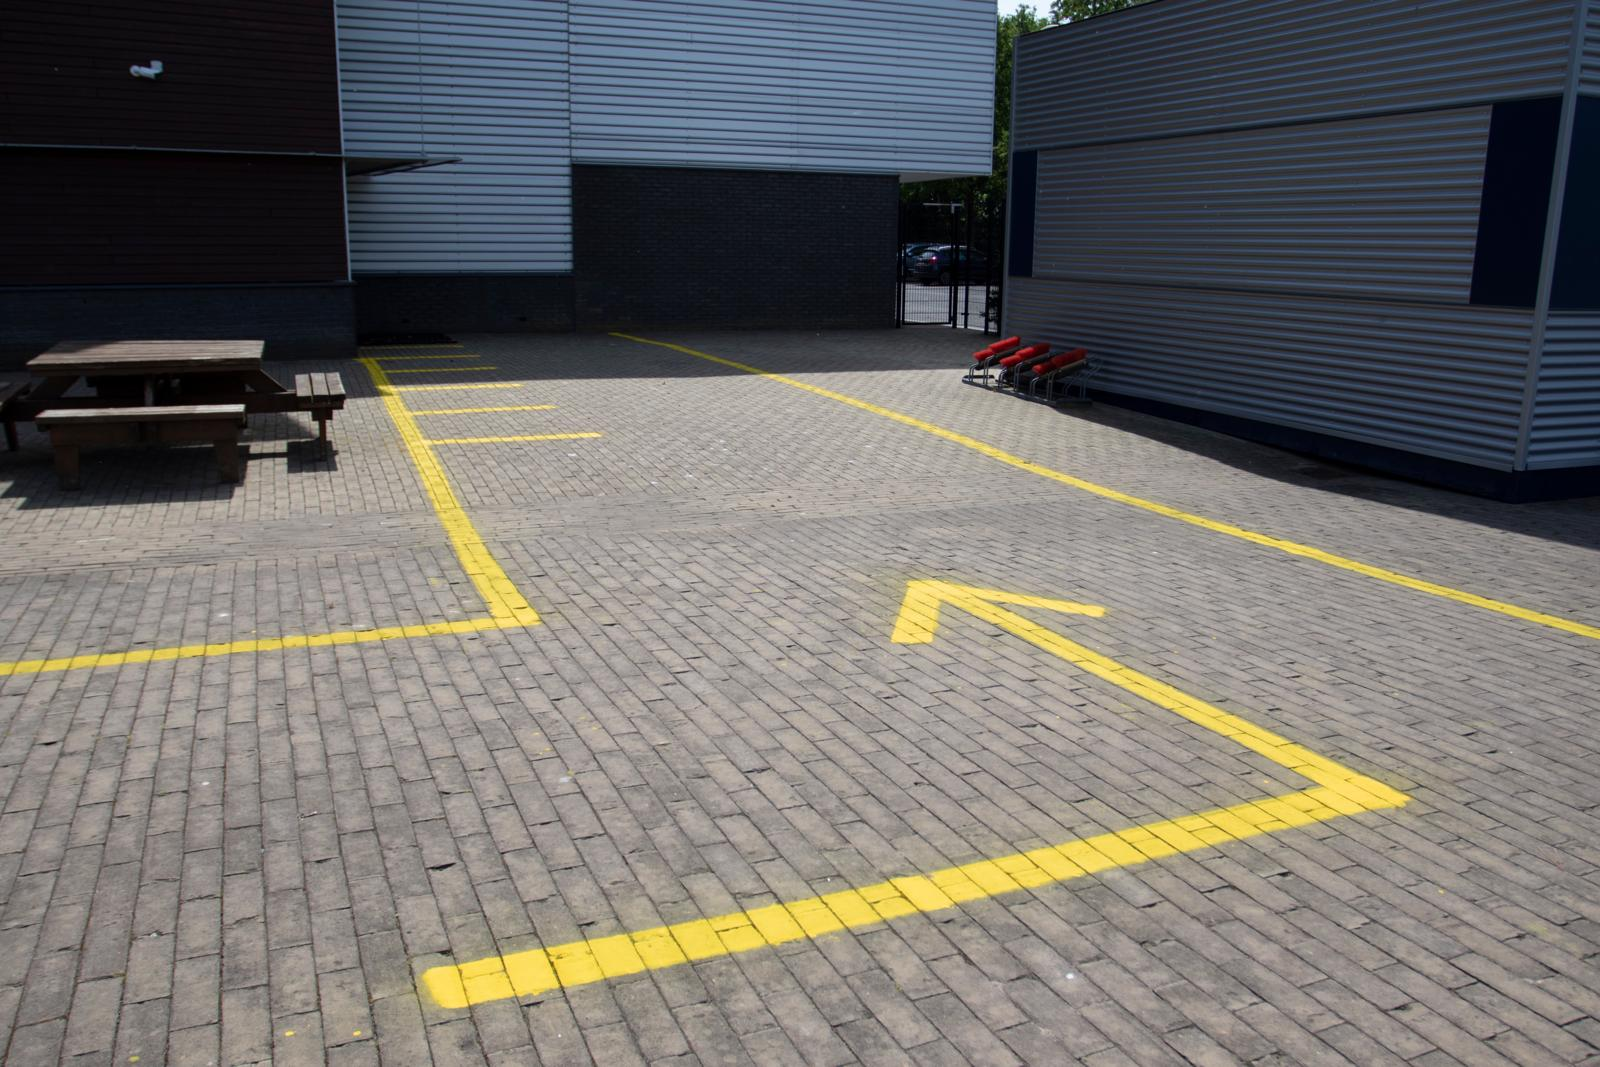 Direction arrows outside at The British School in the Netherlands